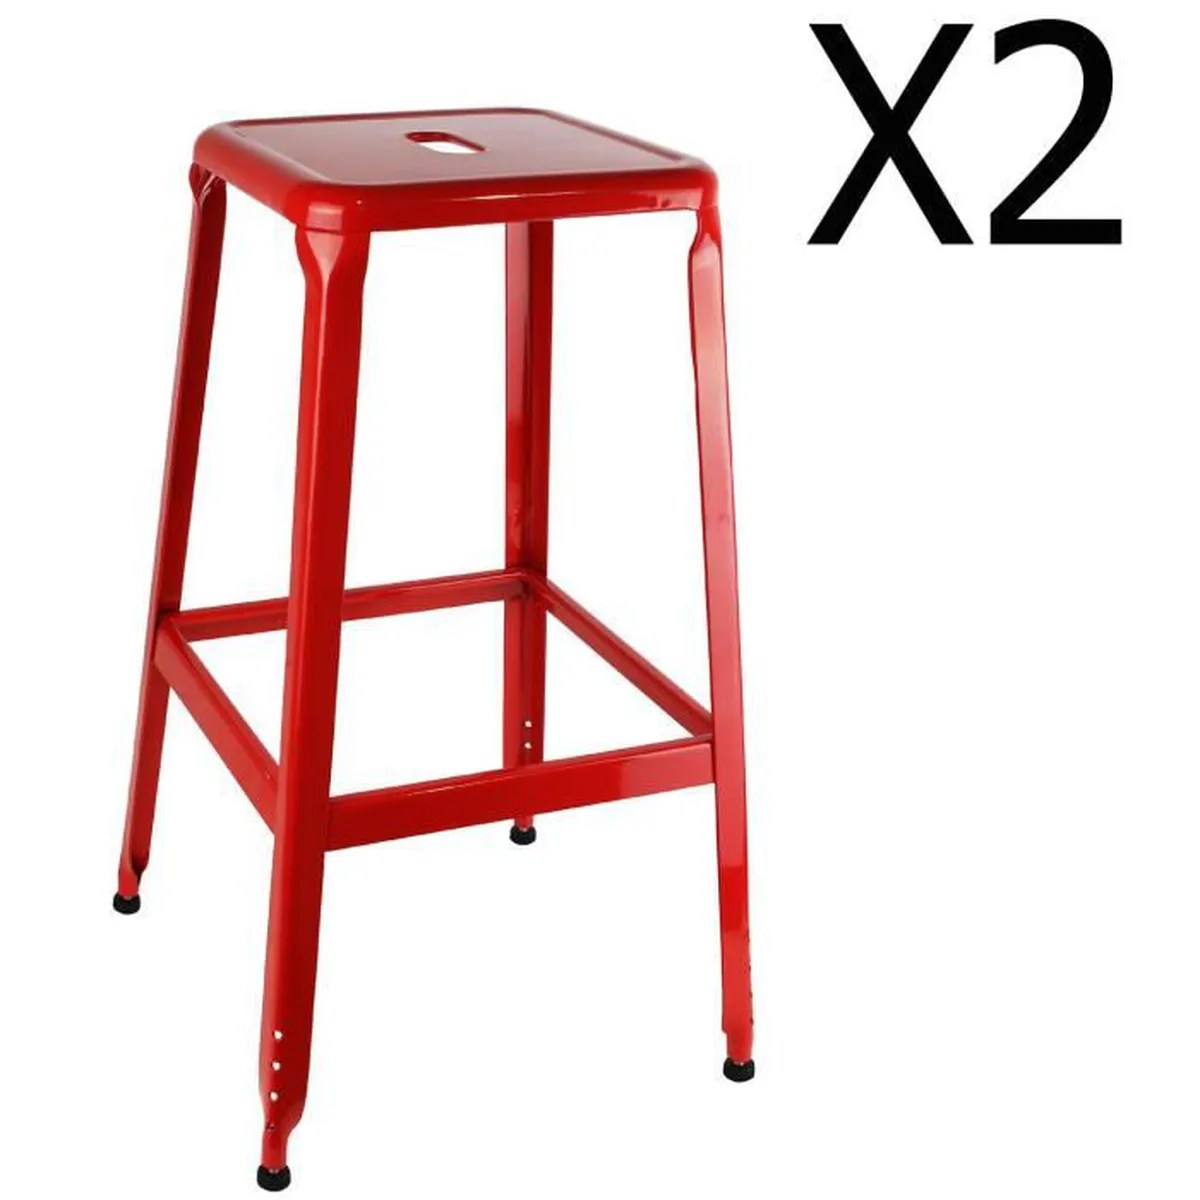 2 Tabourets Rouge Lot De 2 Tabouret De Bar Metal Rouge Achat Vente Lot